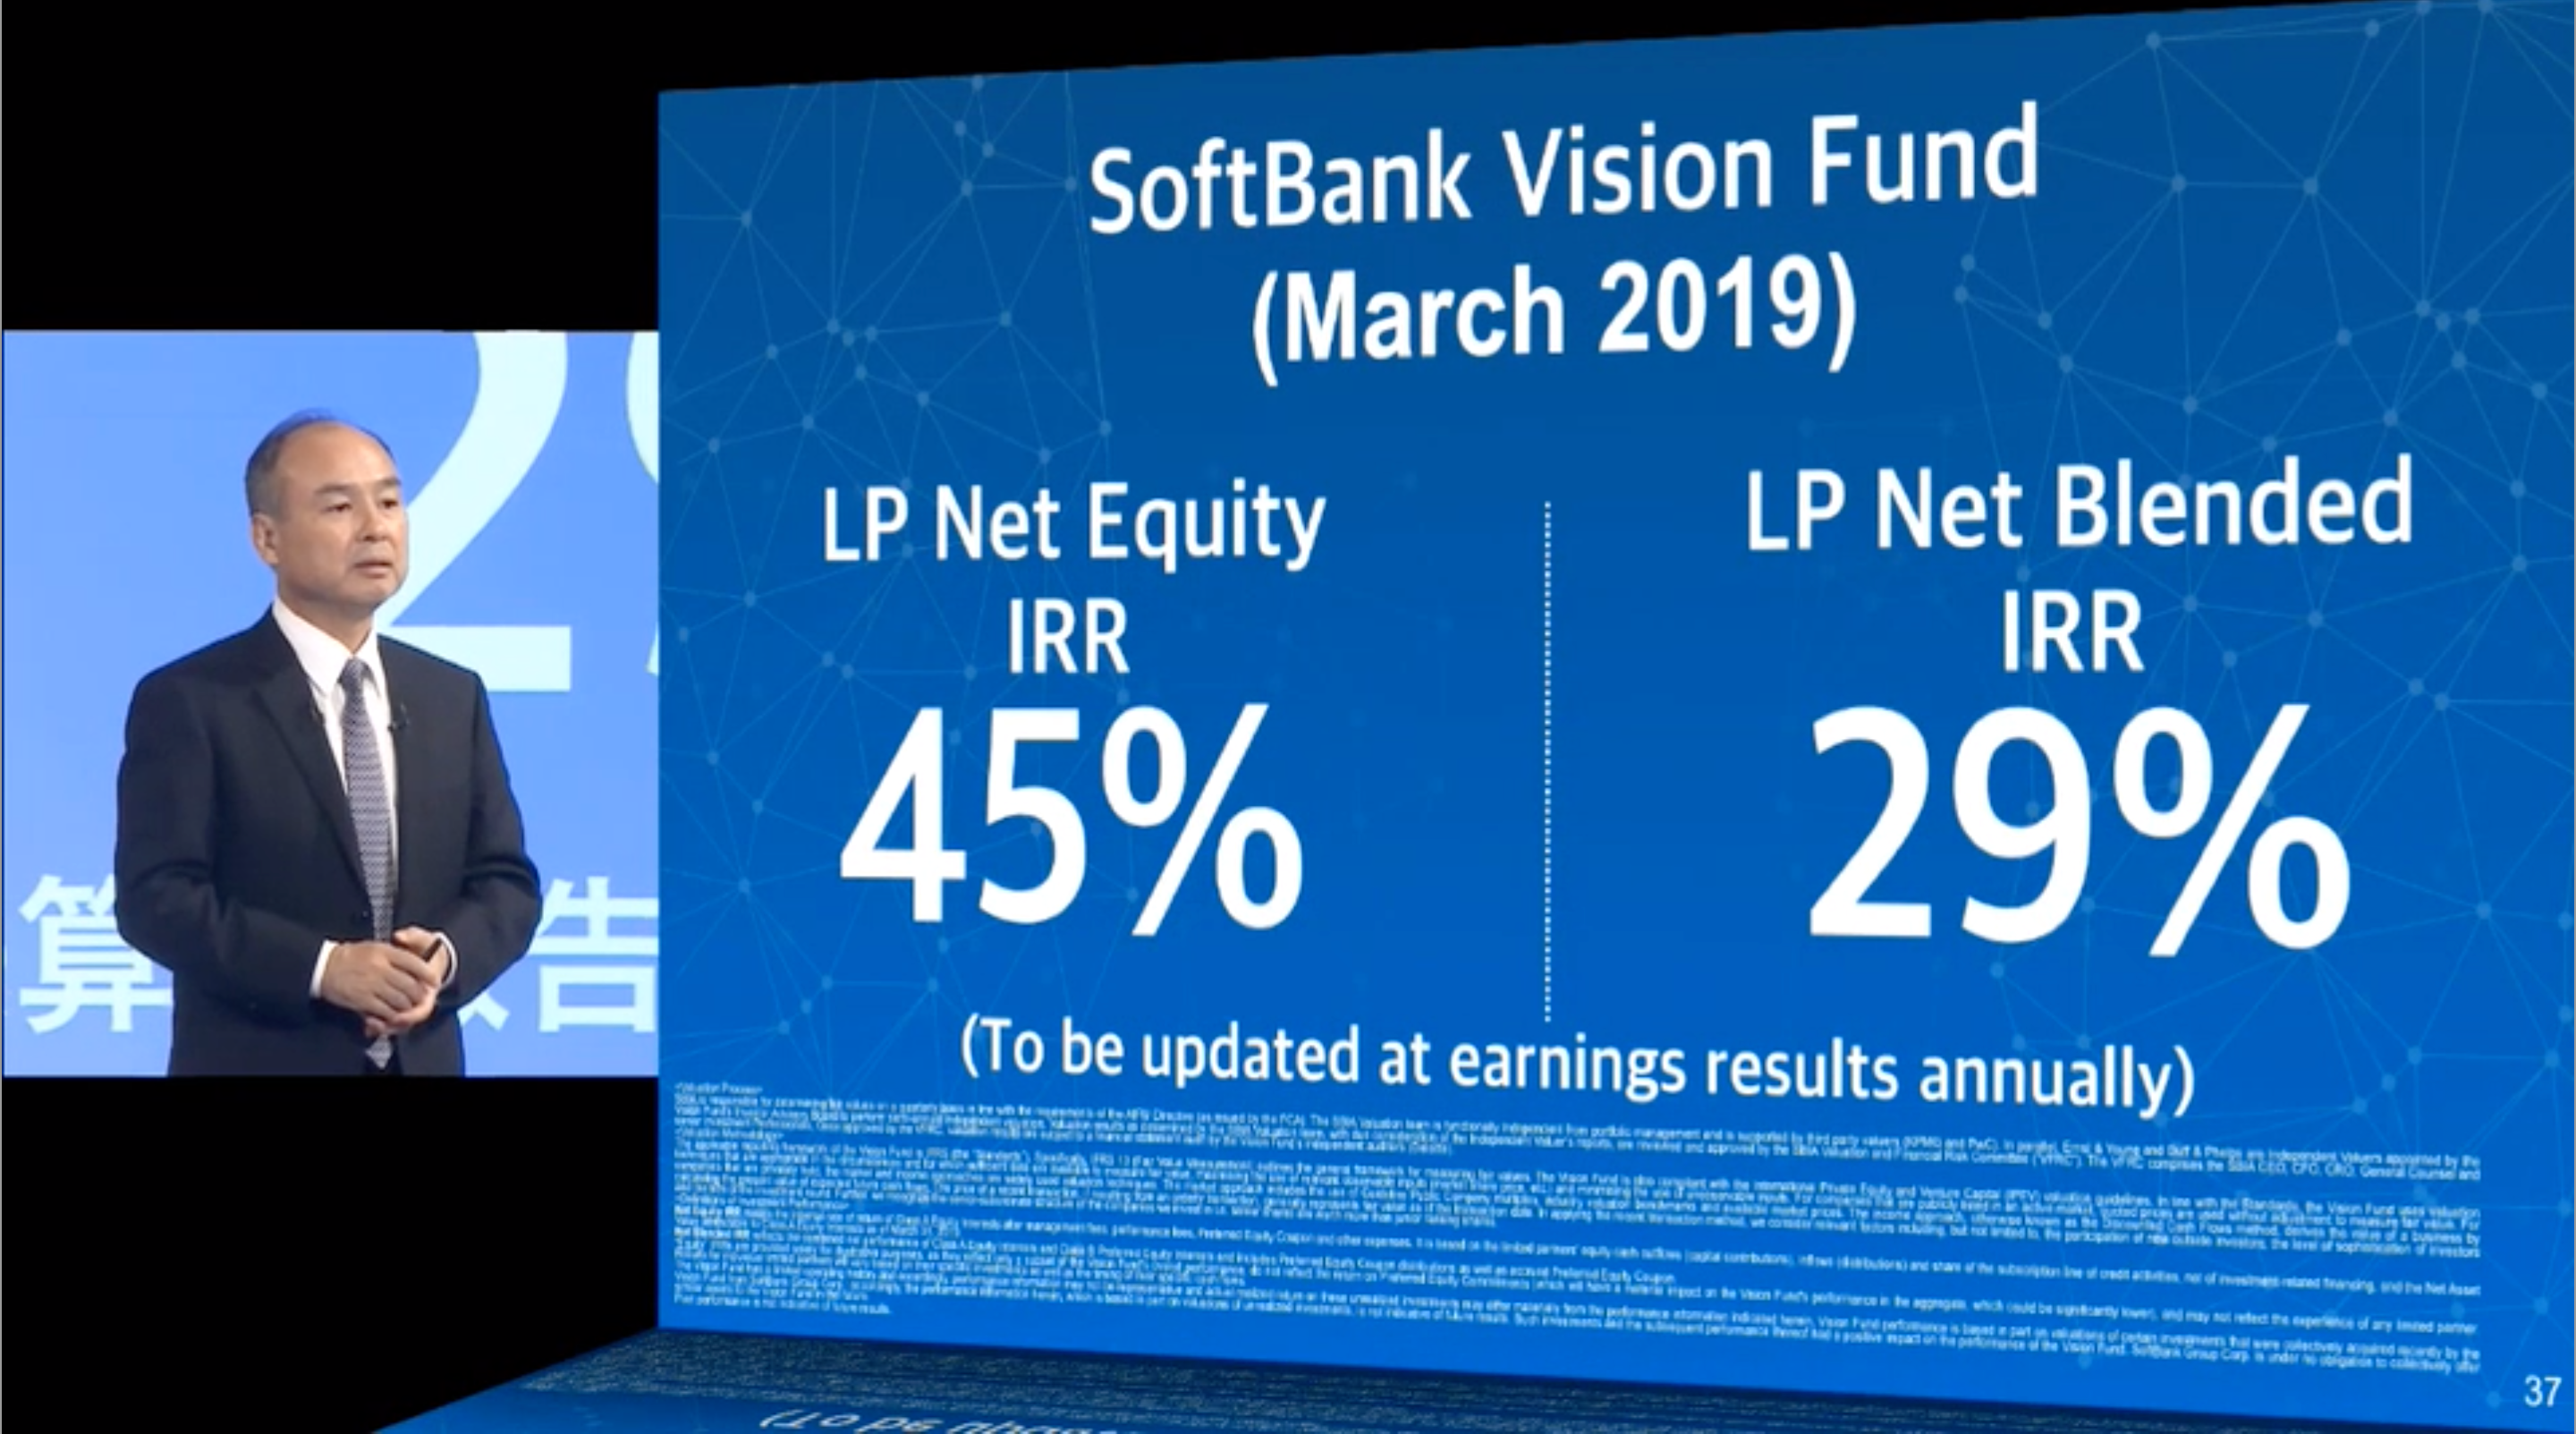 Masayoshi Son claims Vision Fund LPs are already up 45% — but that's mostly paper gains